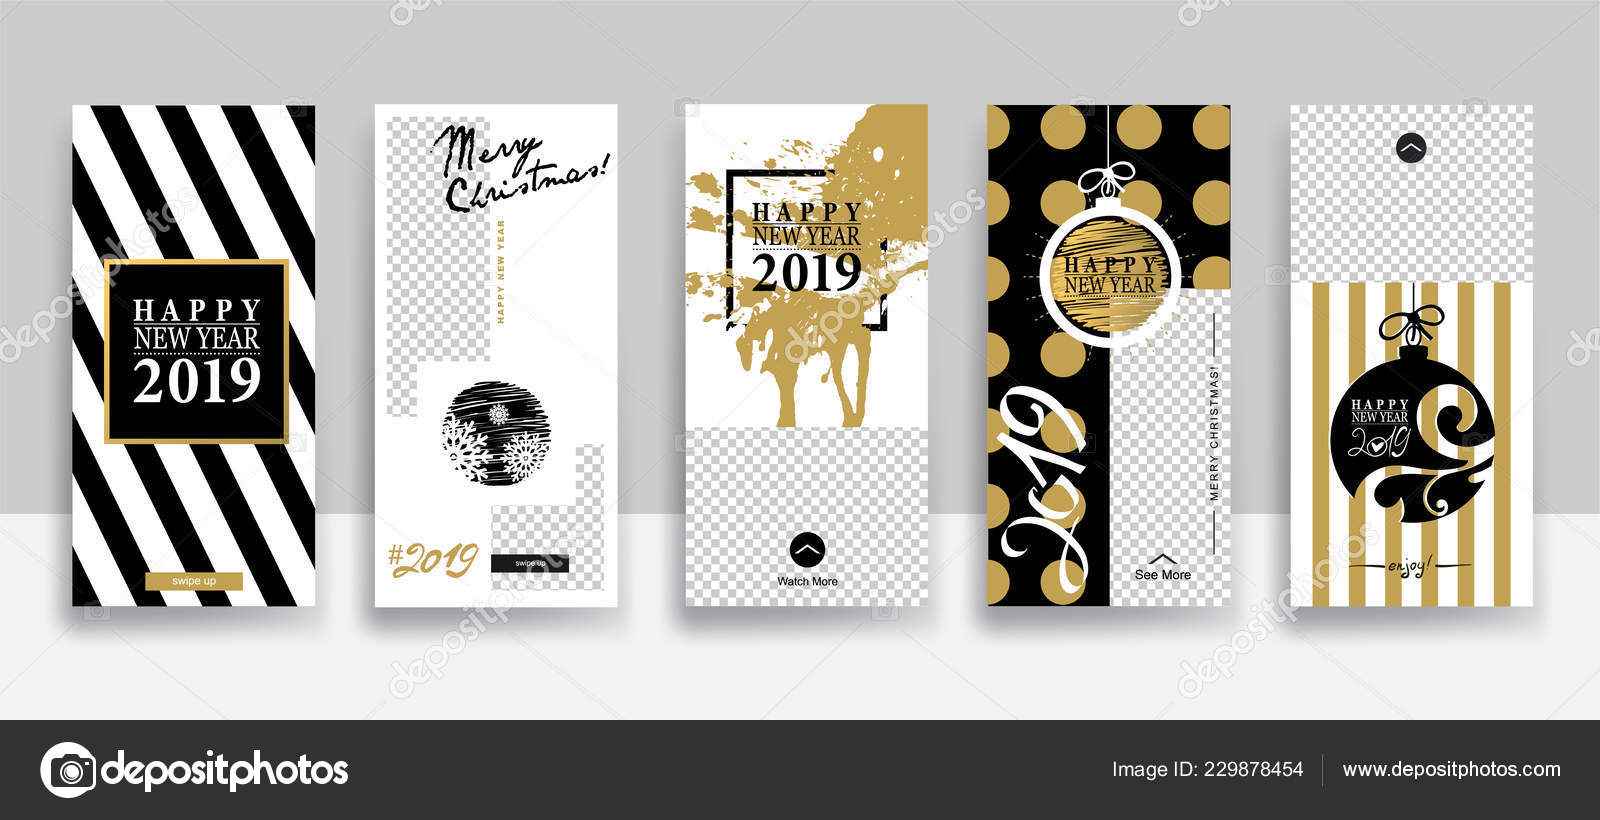 Set Merry Christmas Happy New Year Instagram Stories Template ...